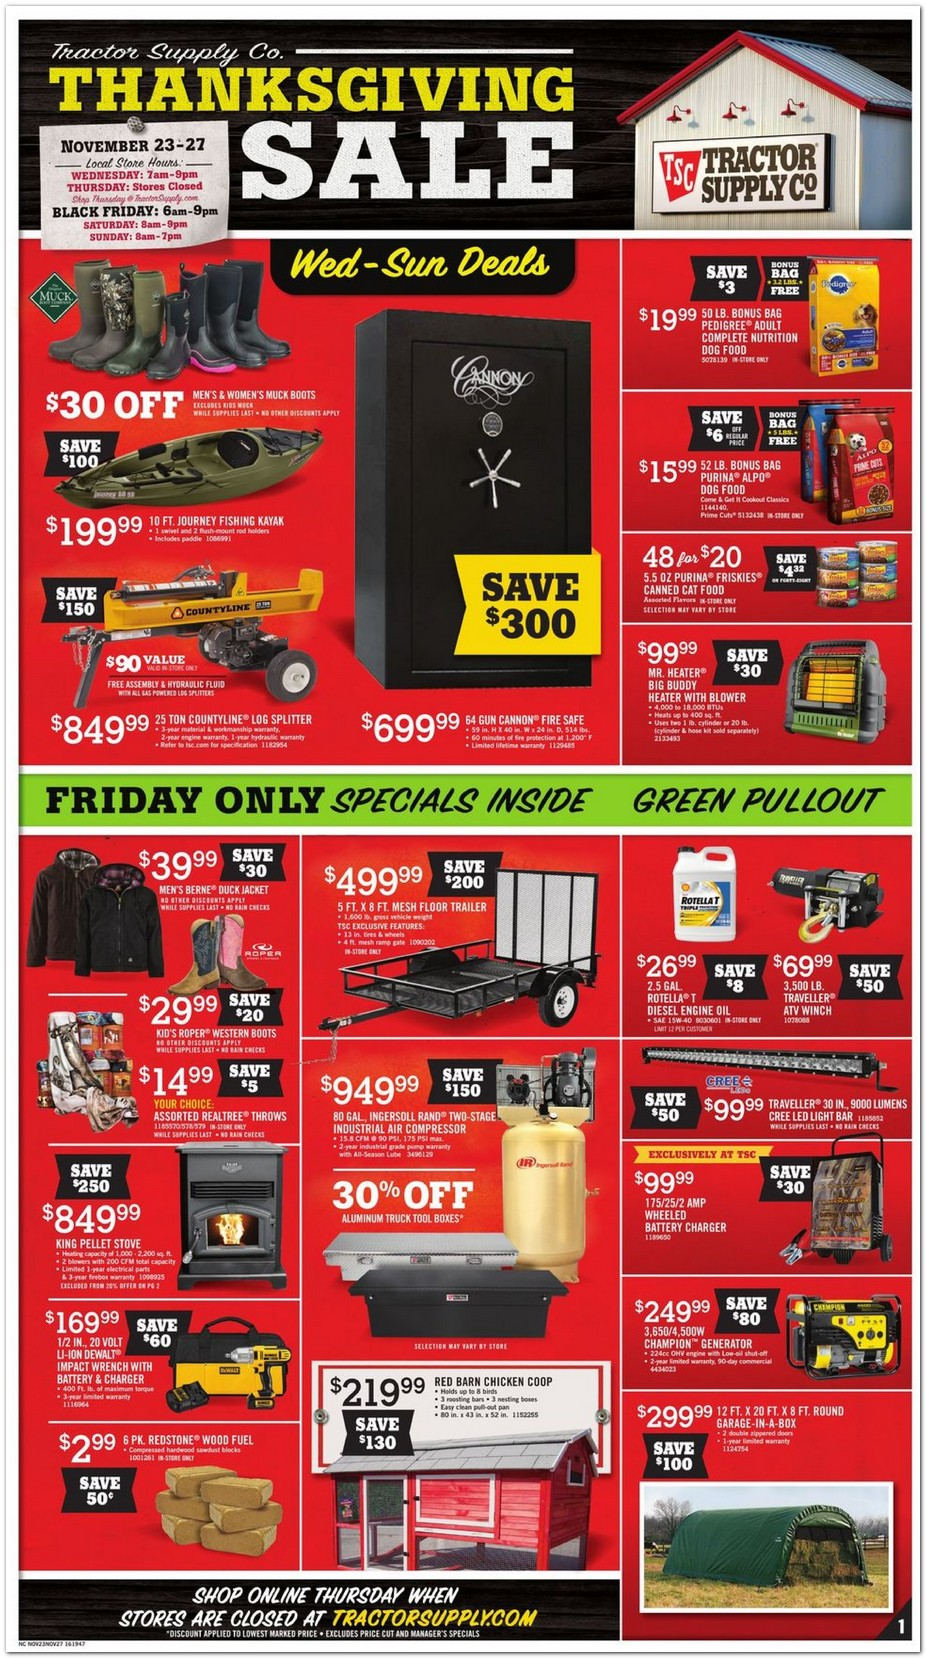 Shop Everyday Low Prices & Get Free Shipping To Your Local Tractor Supply Store!